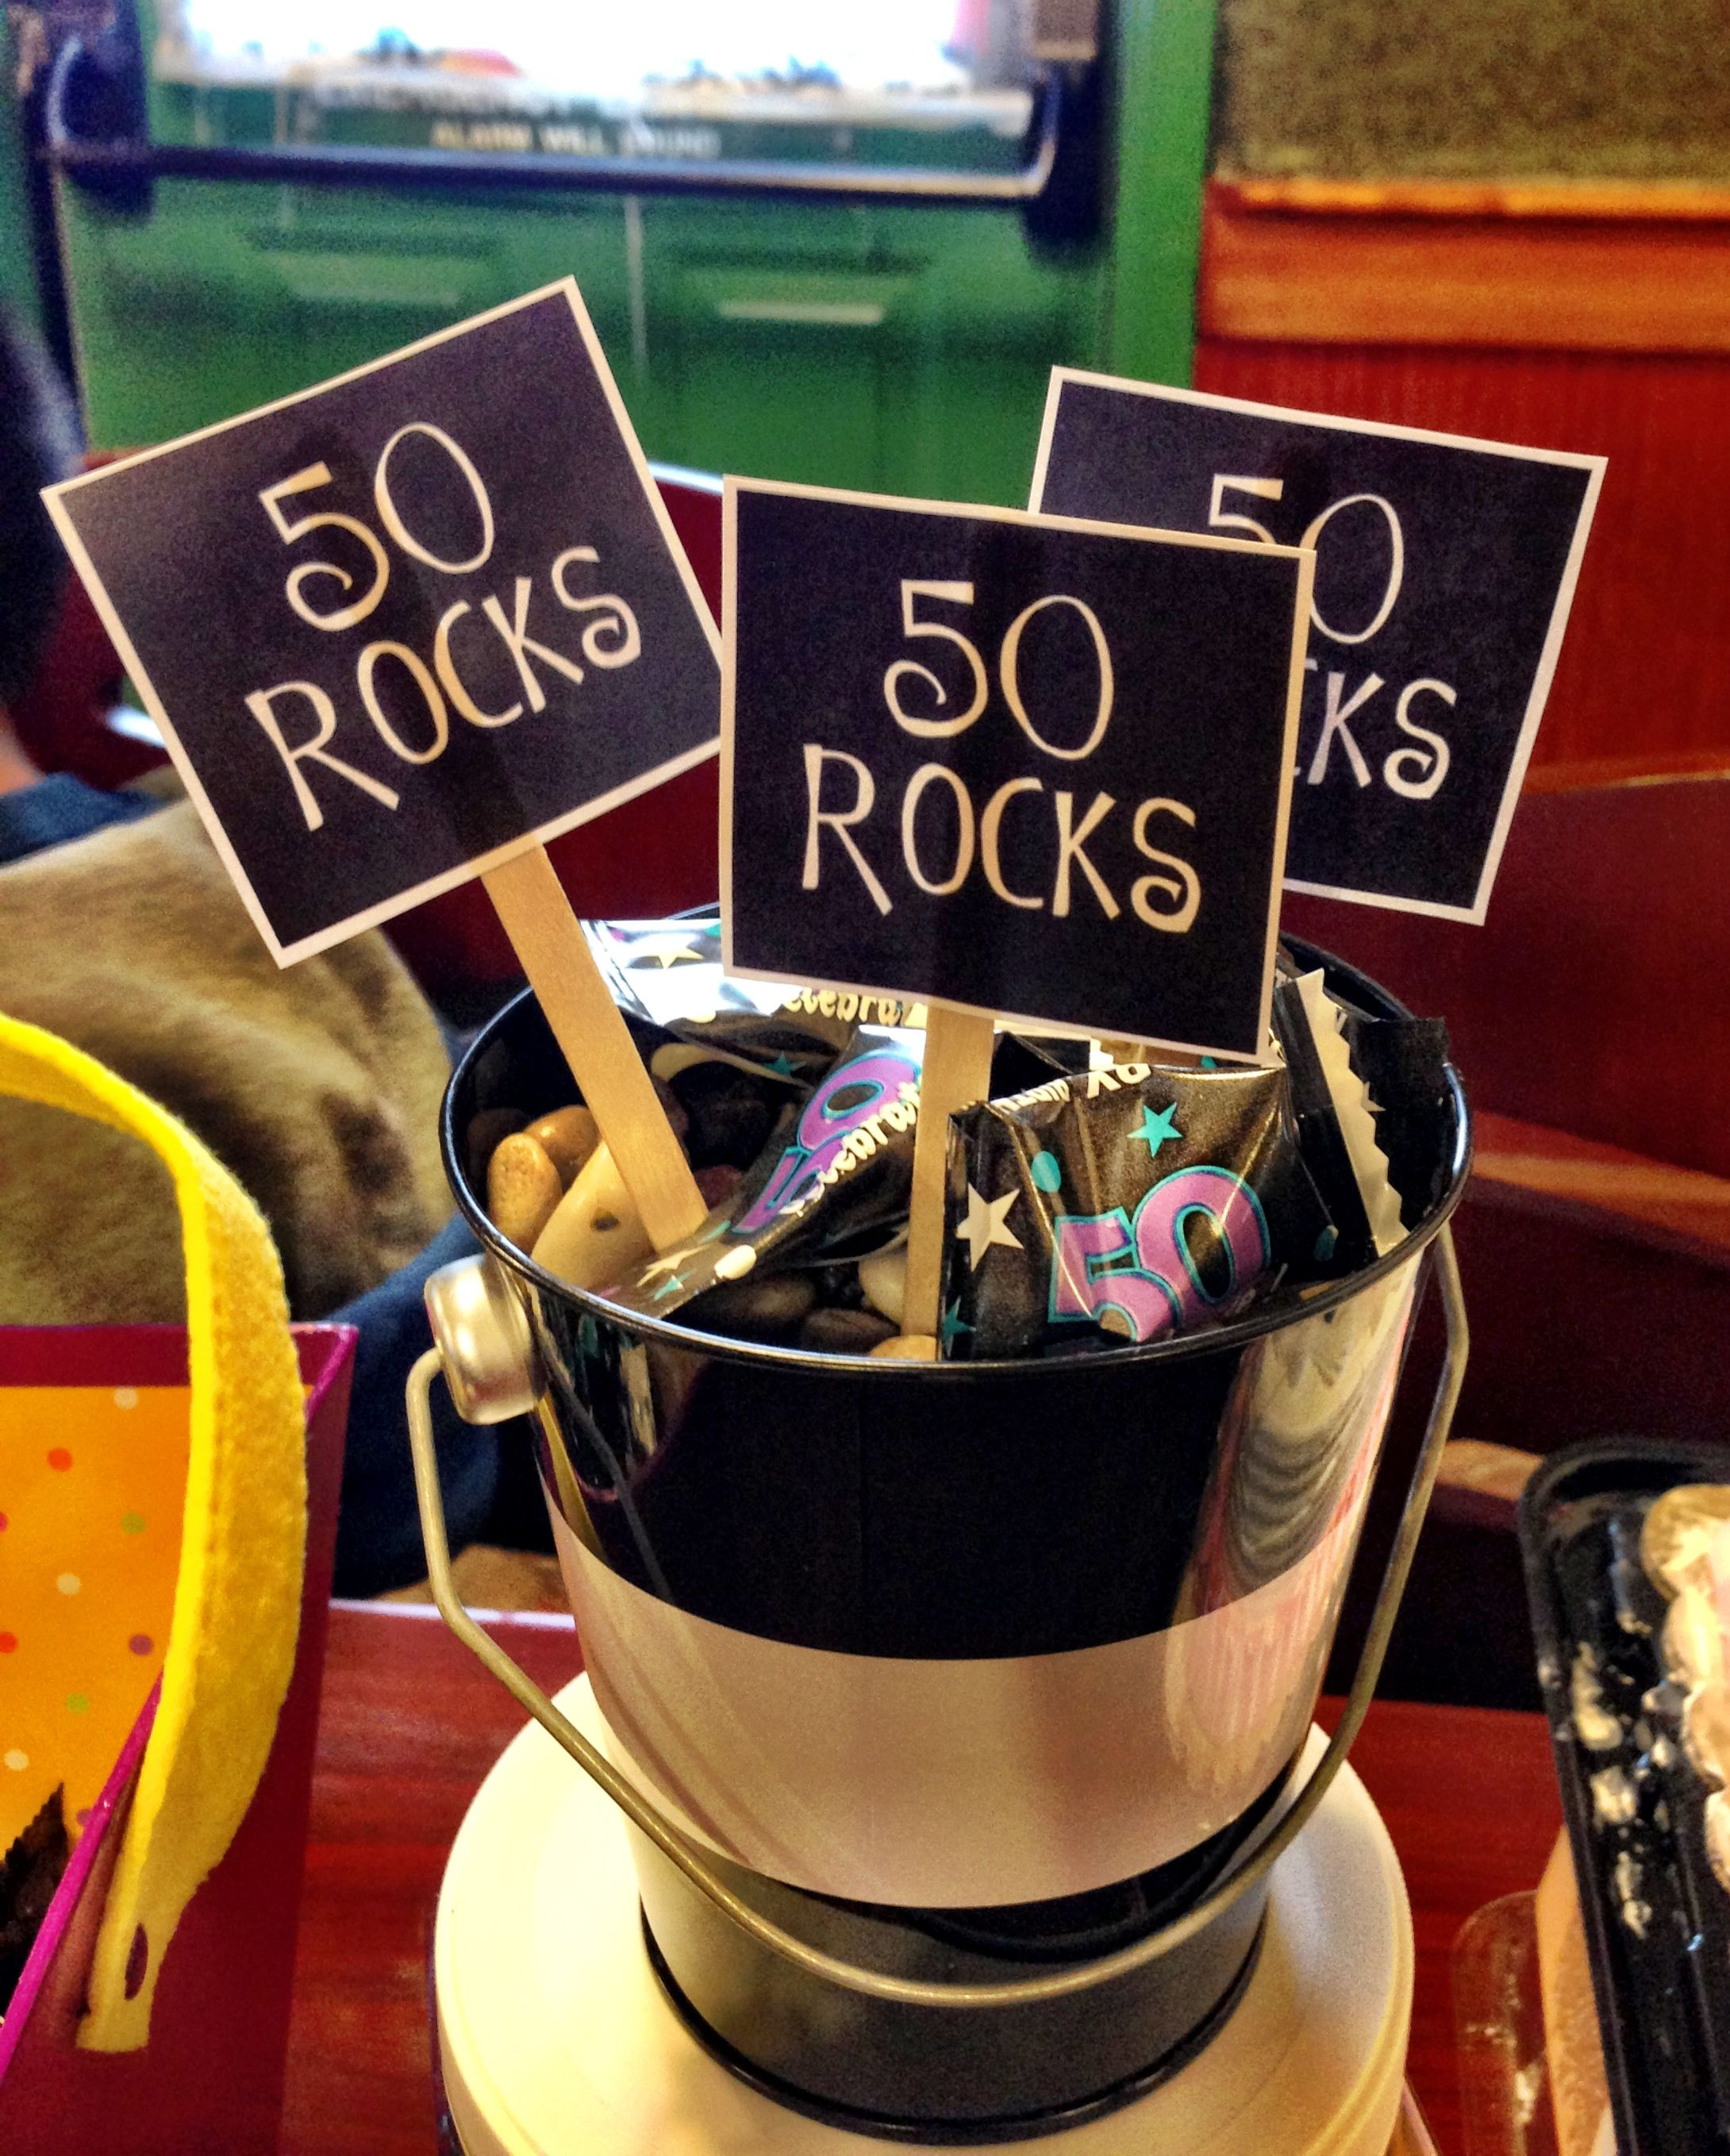 e0e80f3816e 50 Rocks! Birthday present Ideas for 50 year old!  craftyideas ...